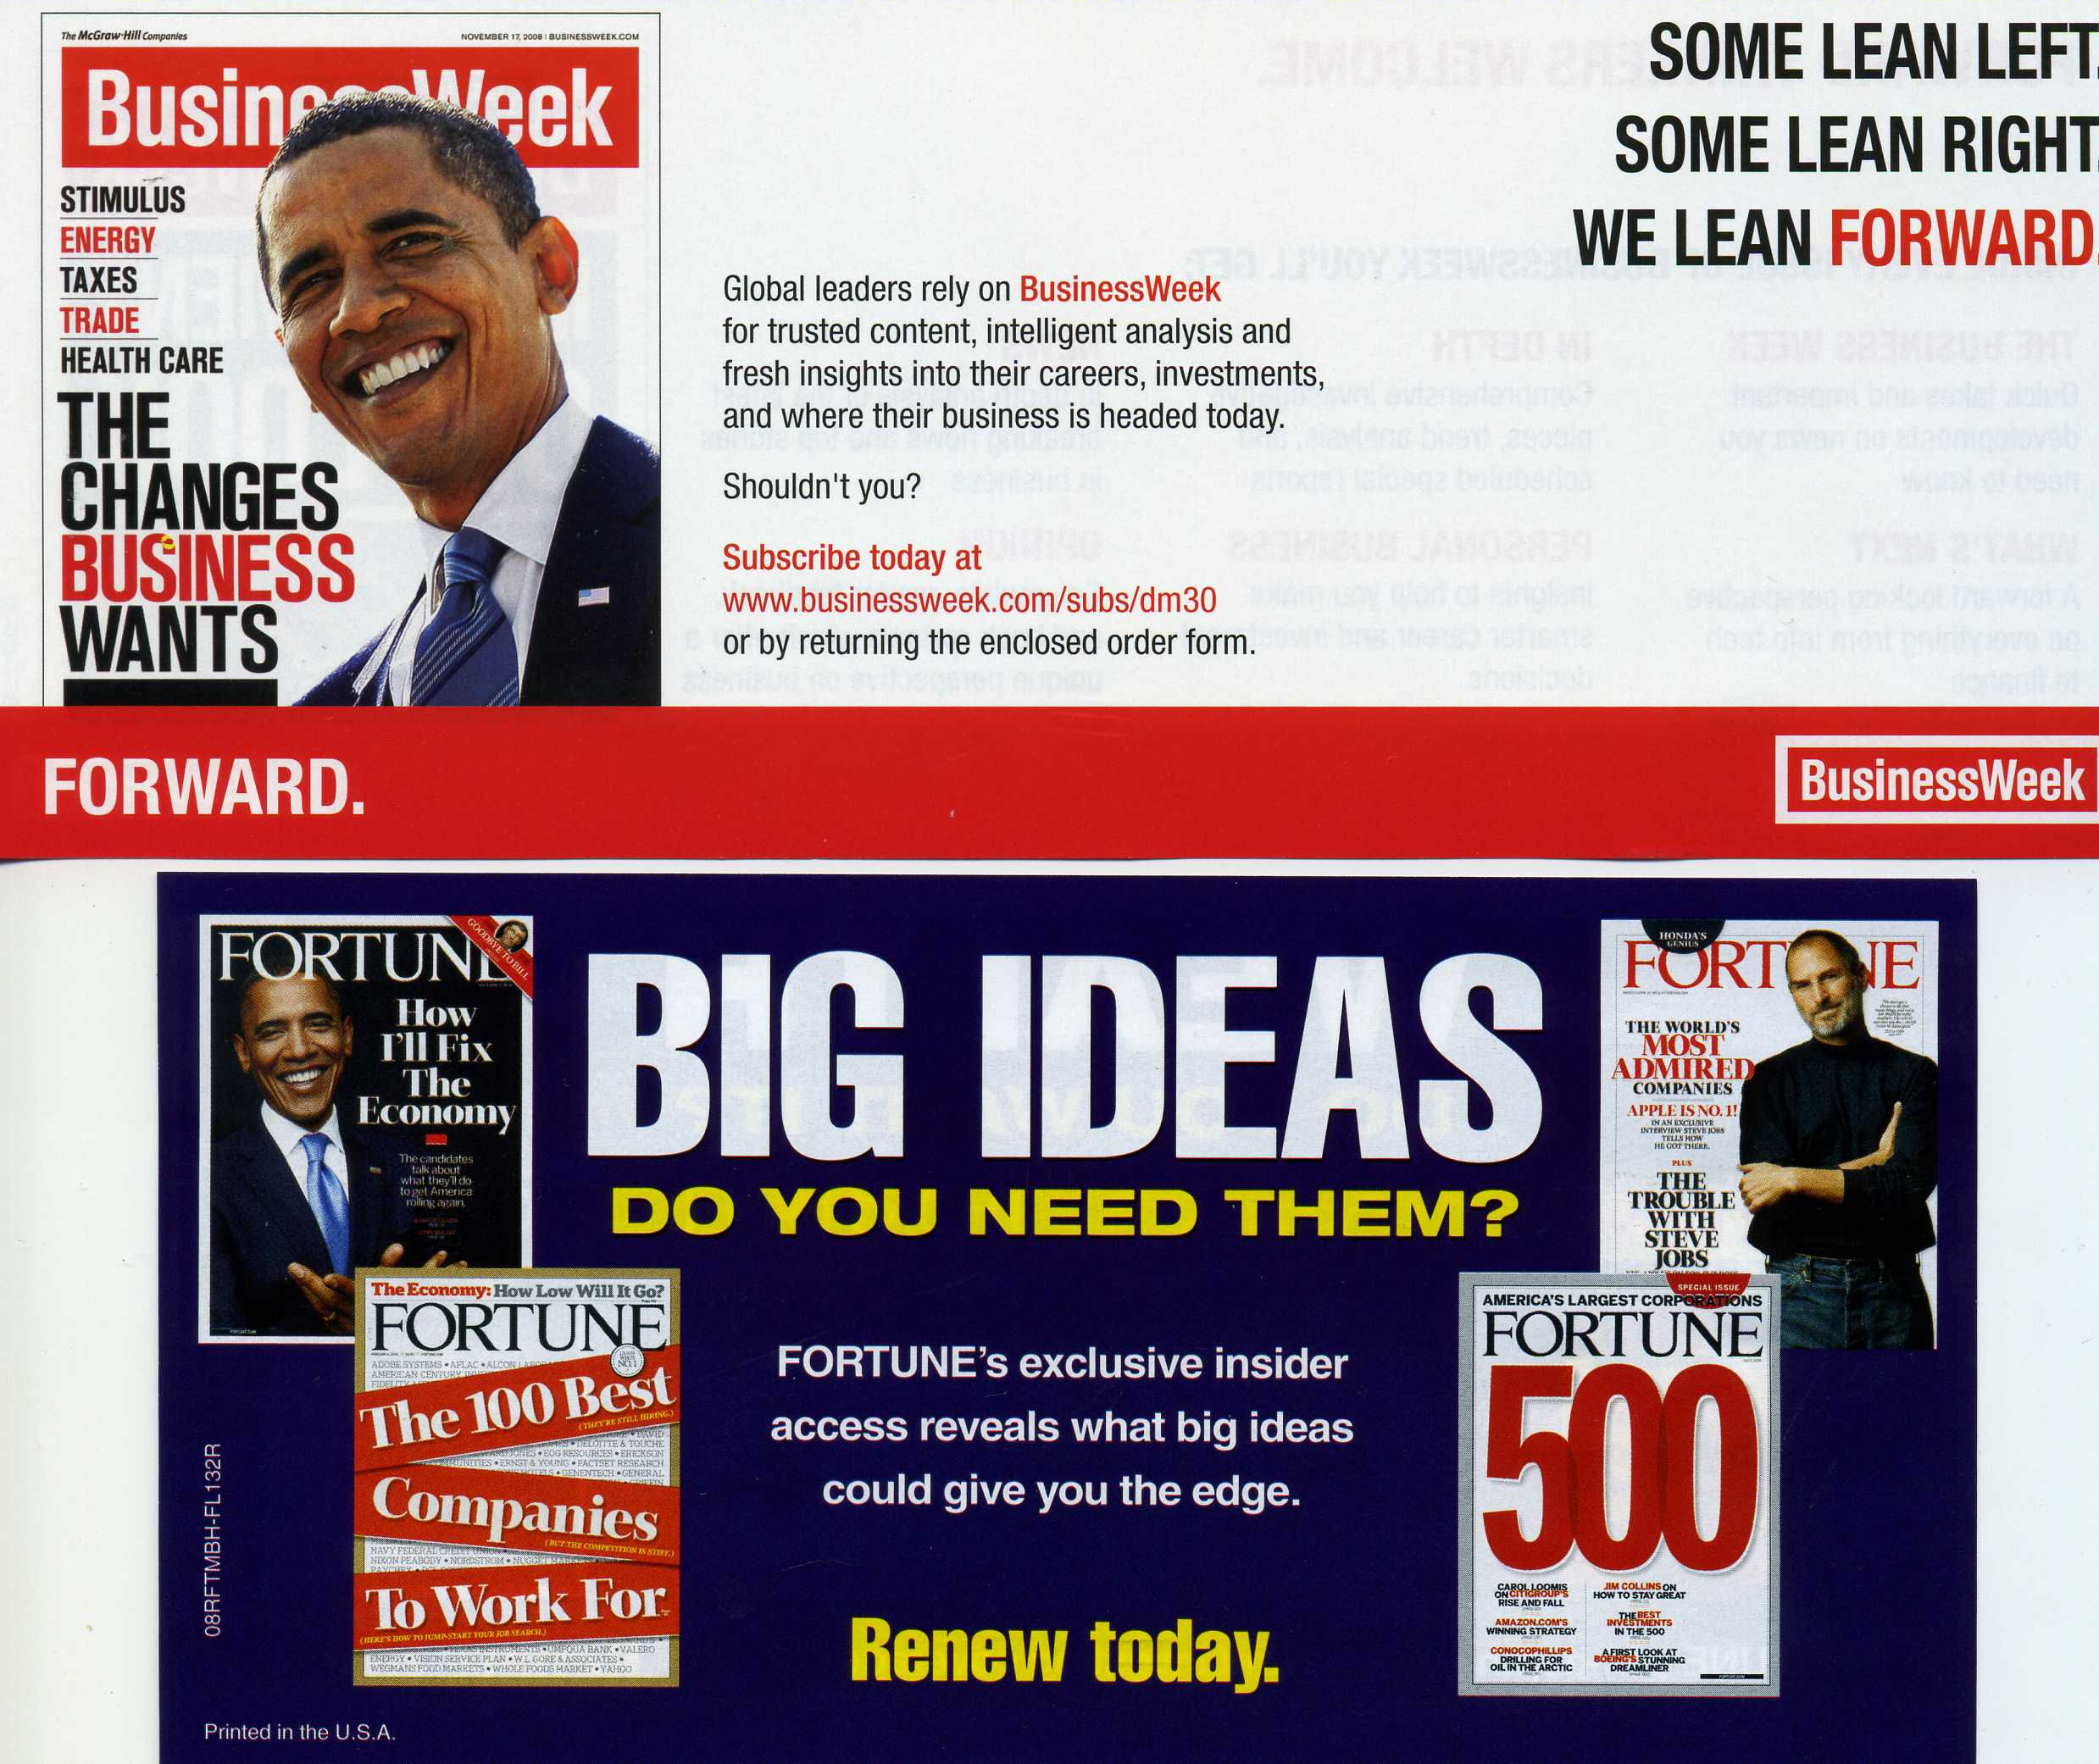 These are magazines.  They are not pro-business.